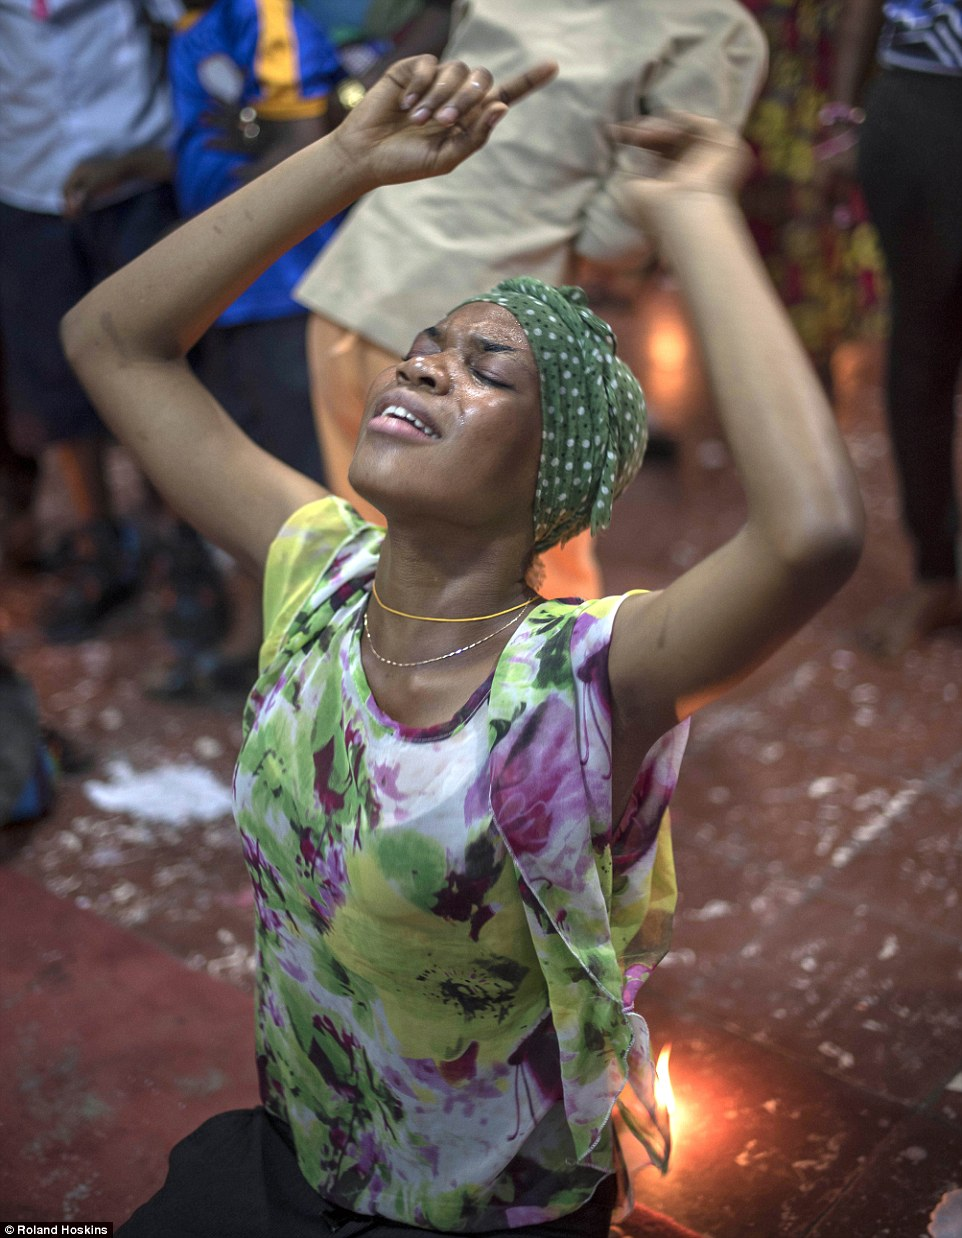 Evil spirits: A woman takes part in an exorcism ceremony in the Democratic Republic of Congo, where many have embraced Catholicism while holding on to traditional beliefs surrounding evil spirits - with some truly horrifying consequences